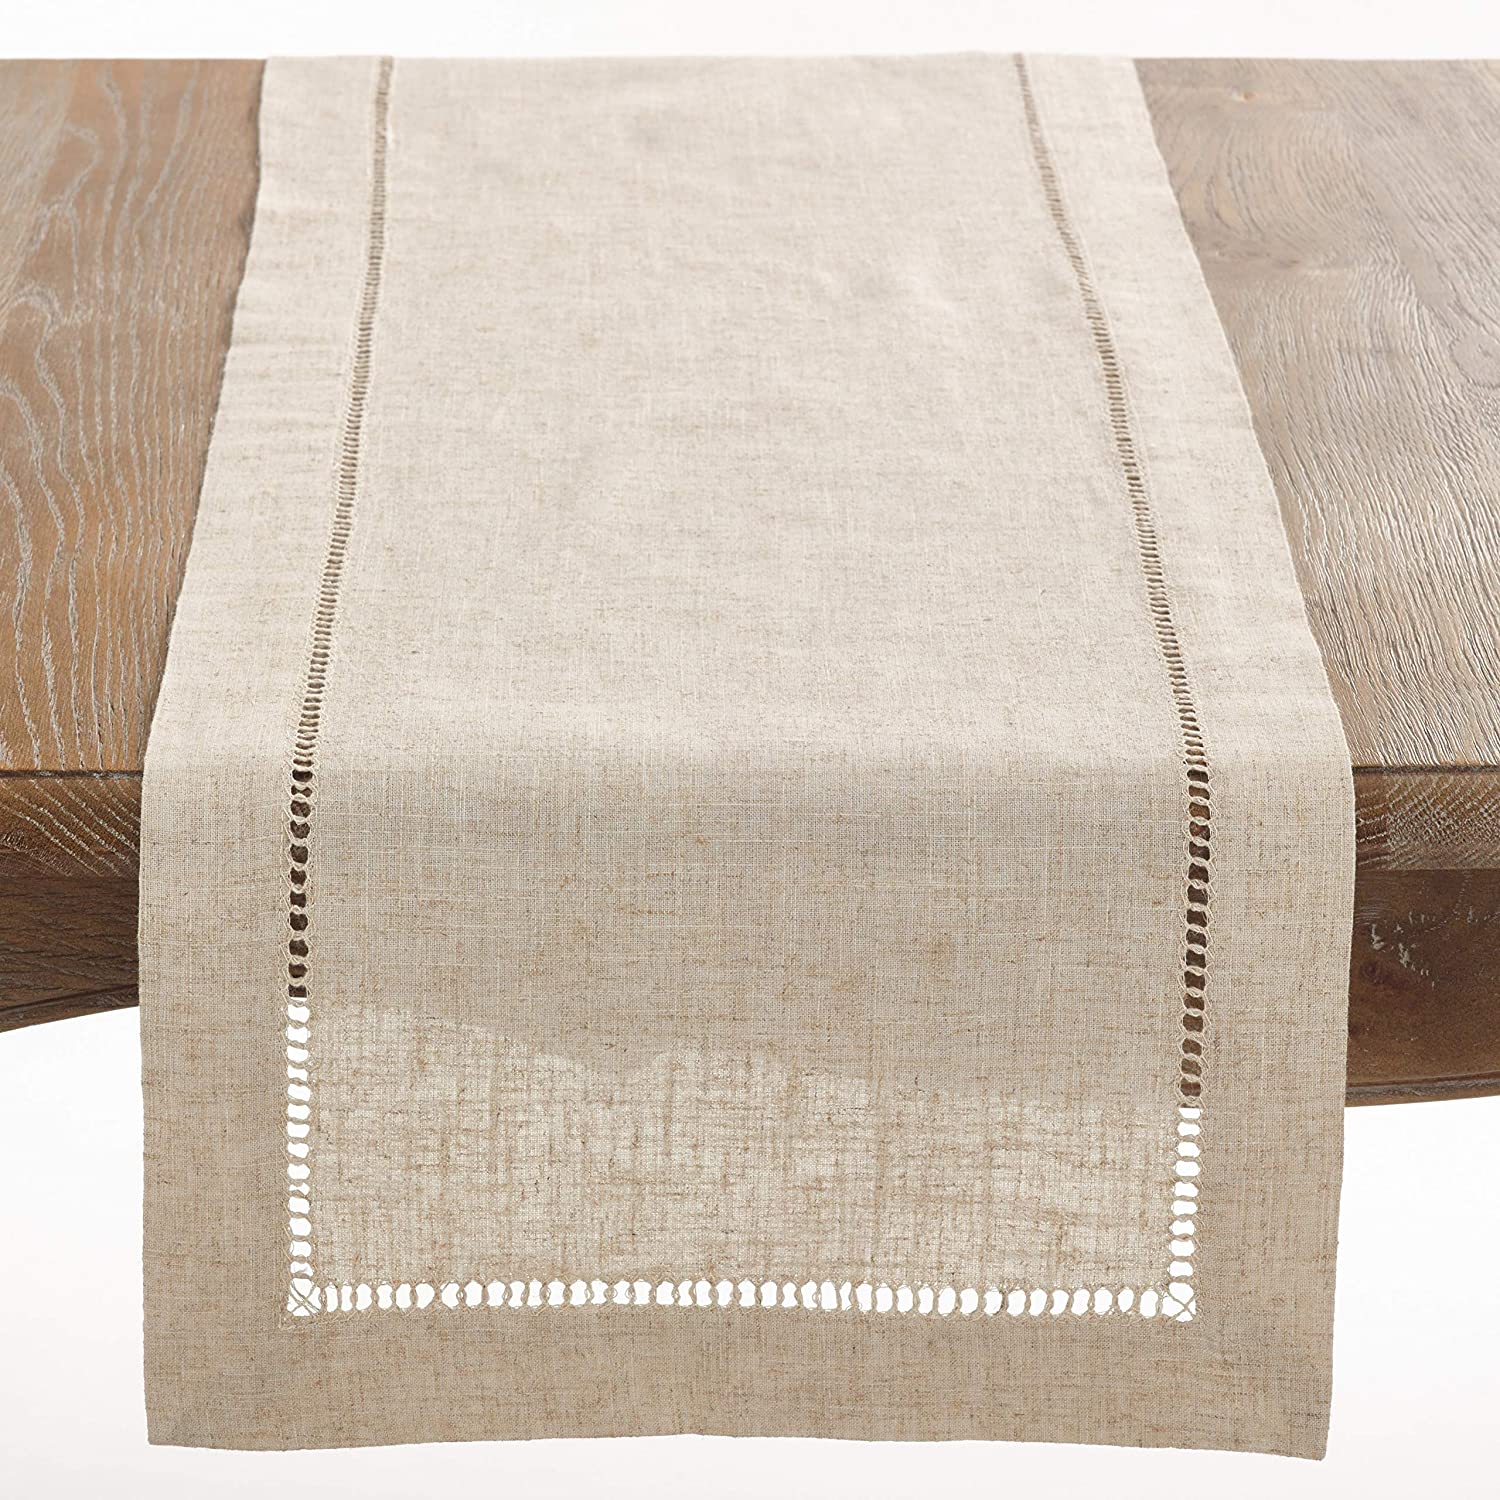 Fennco Styles Toscana All items in the store Max 62% OFF Contemporary Hemstitched Linen Blend 18 x